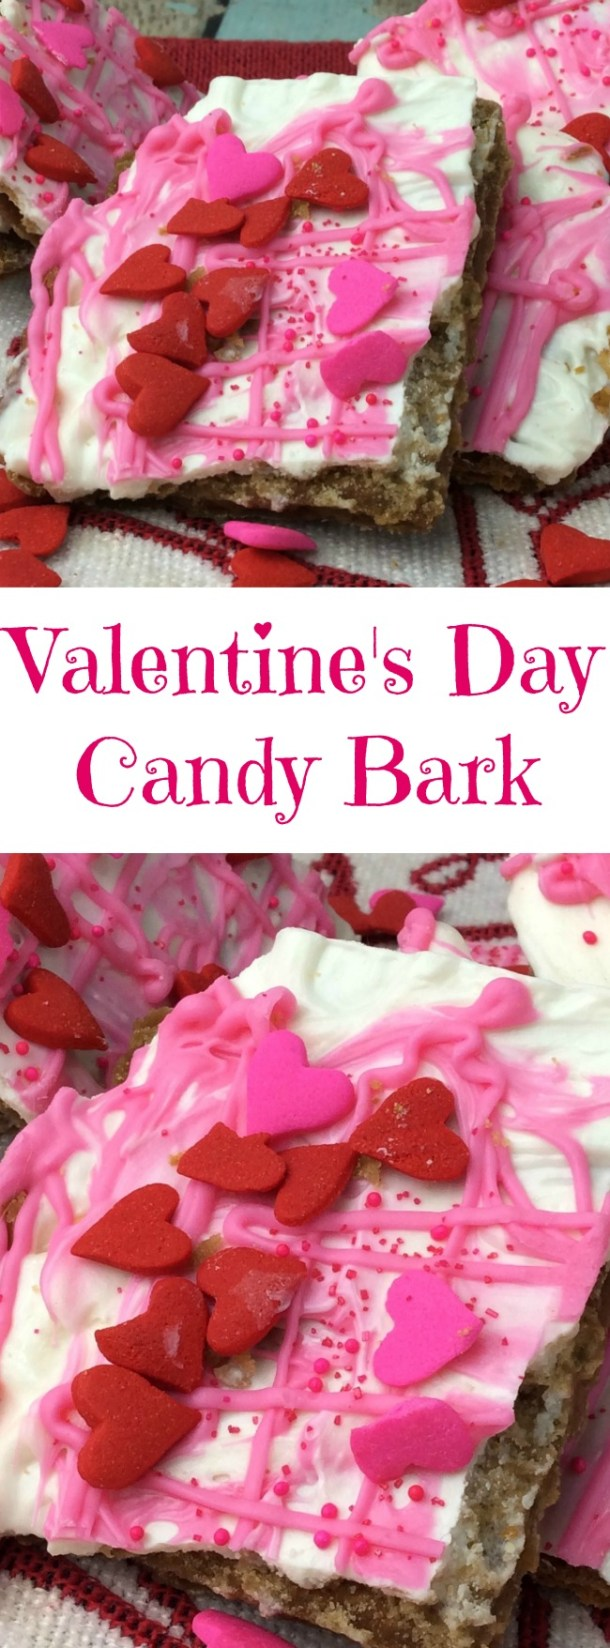 The Valentine's Day Candy Bark recipe is one of the easiest recipes that I have done in a while. It's fun to make, the kids can help and it's yummy.